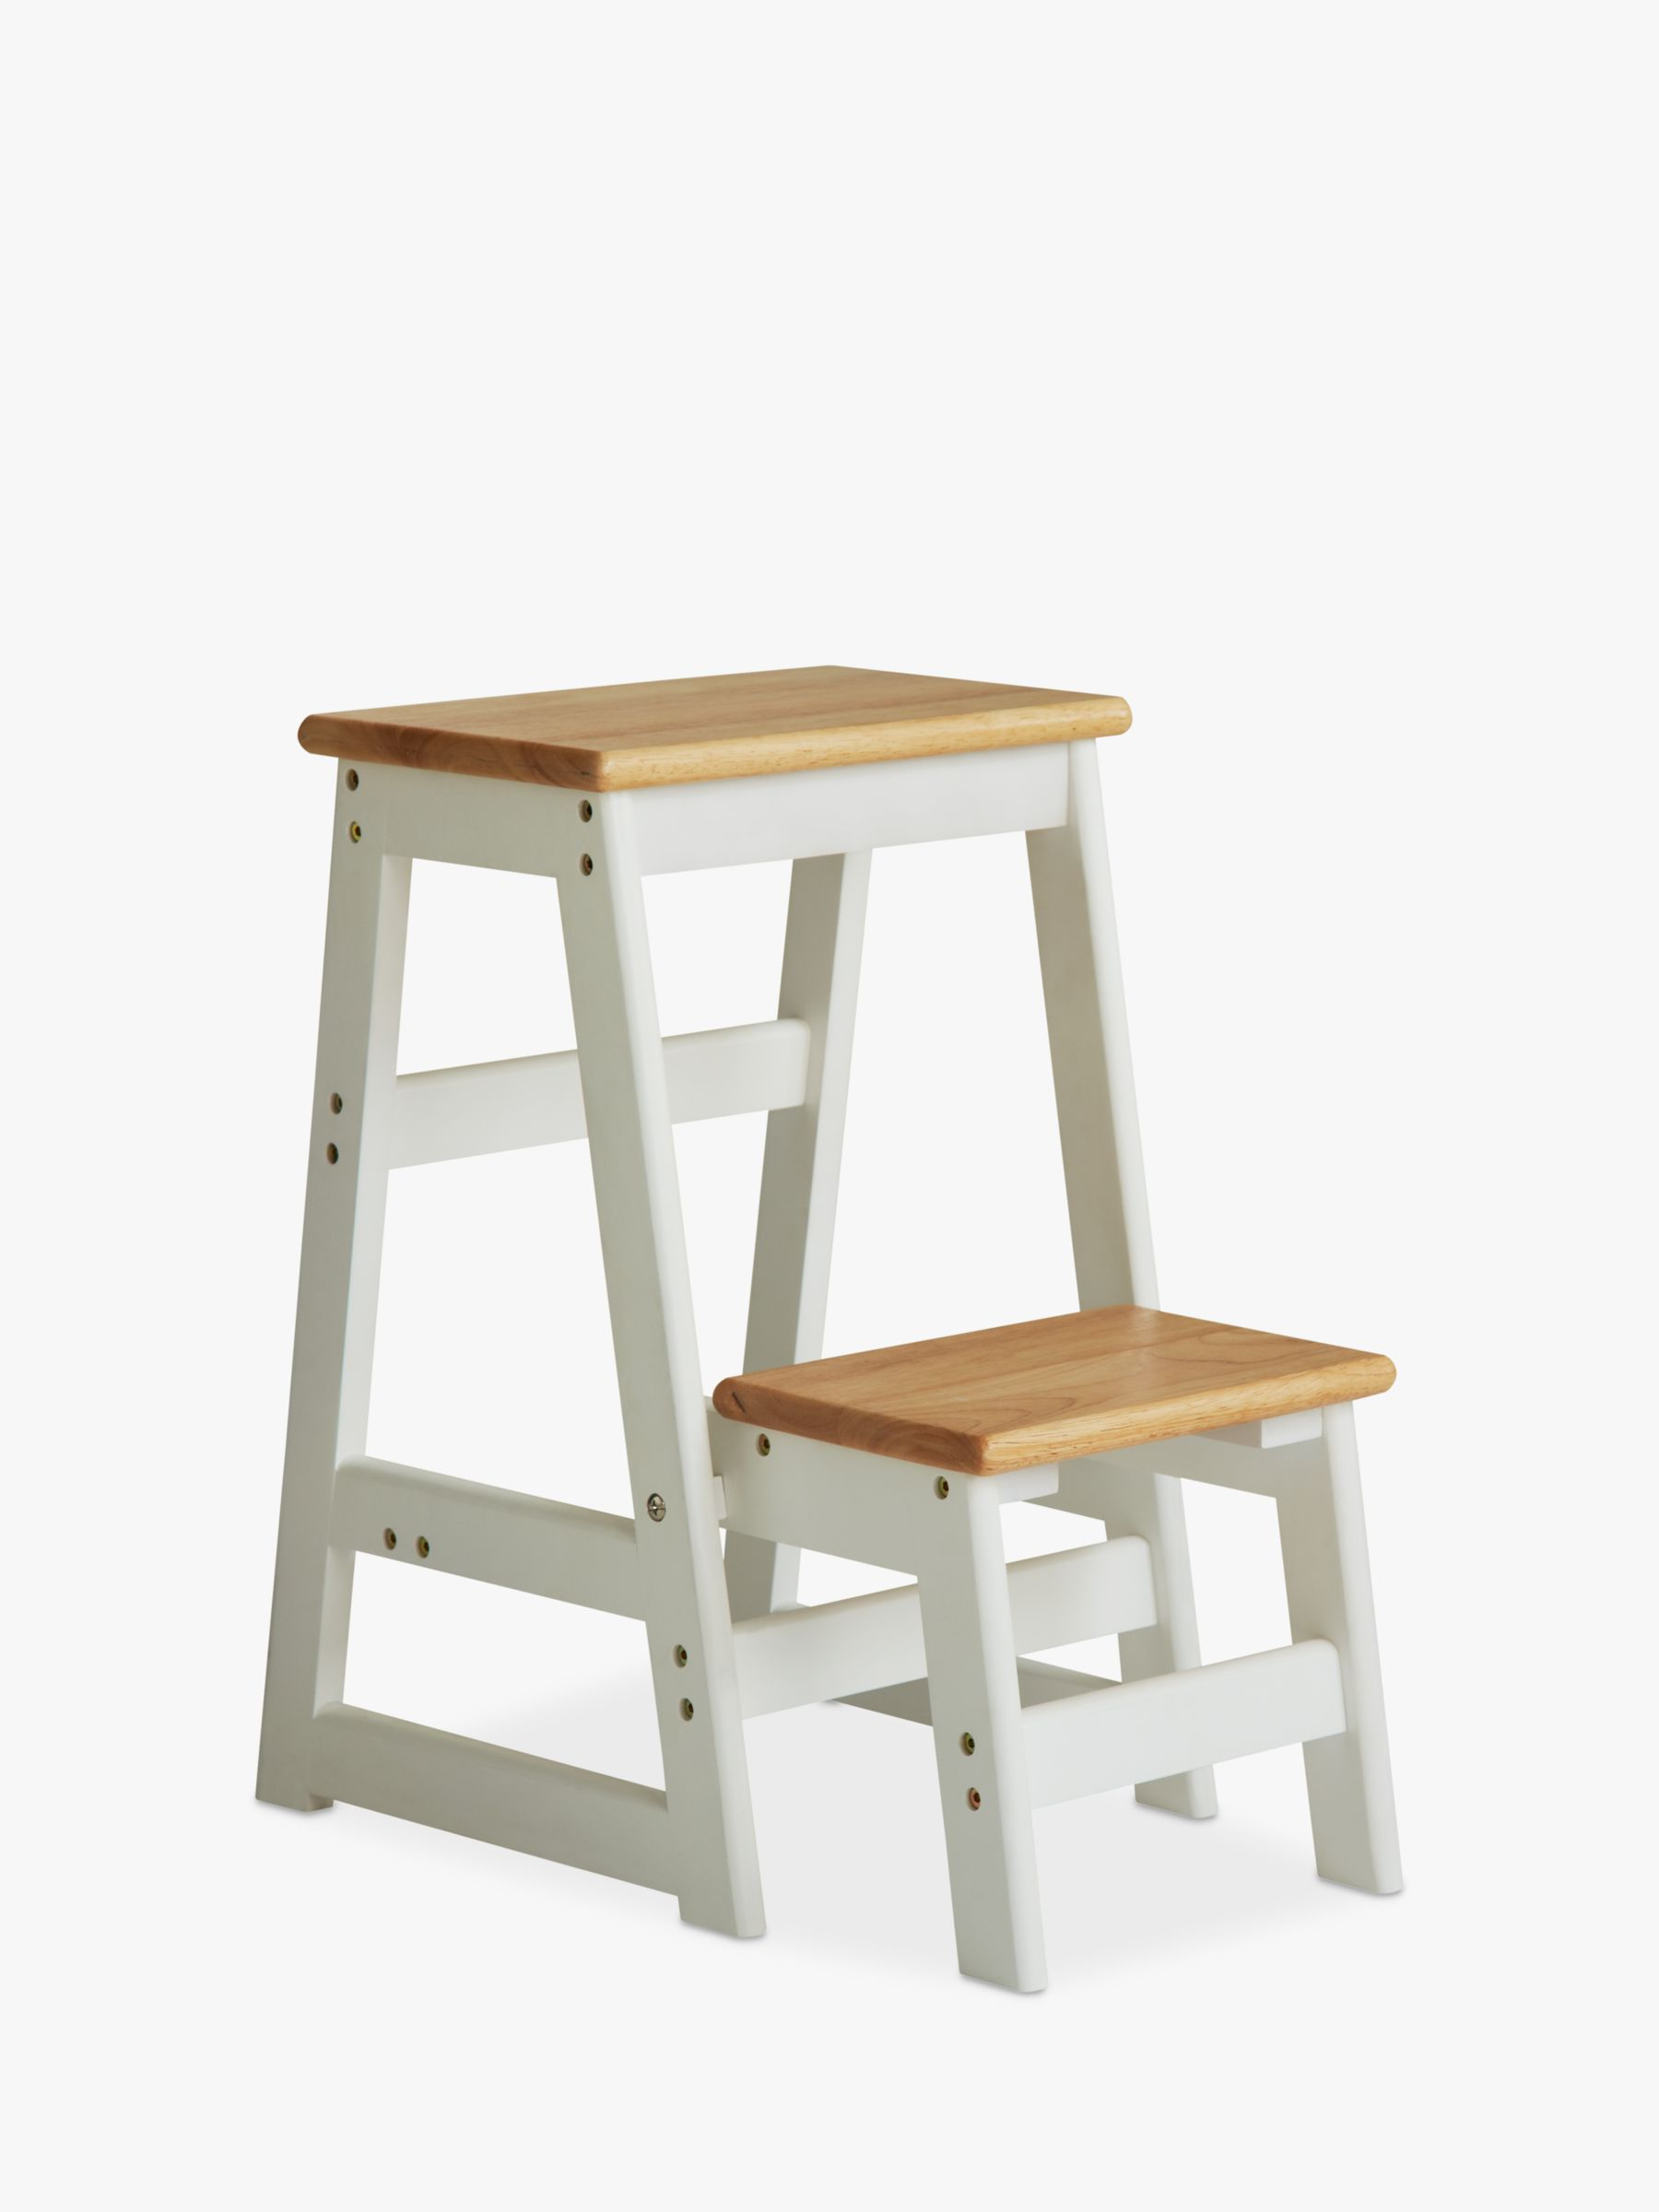 wooden step stool chair wheelchair zauba house by john lewis fixed at